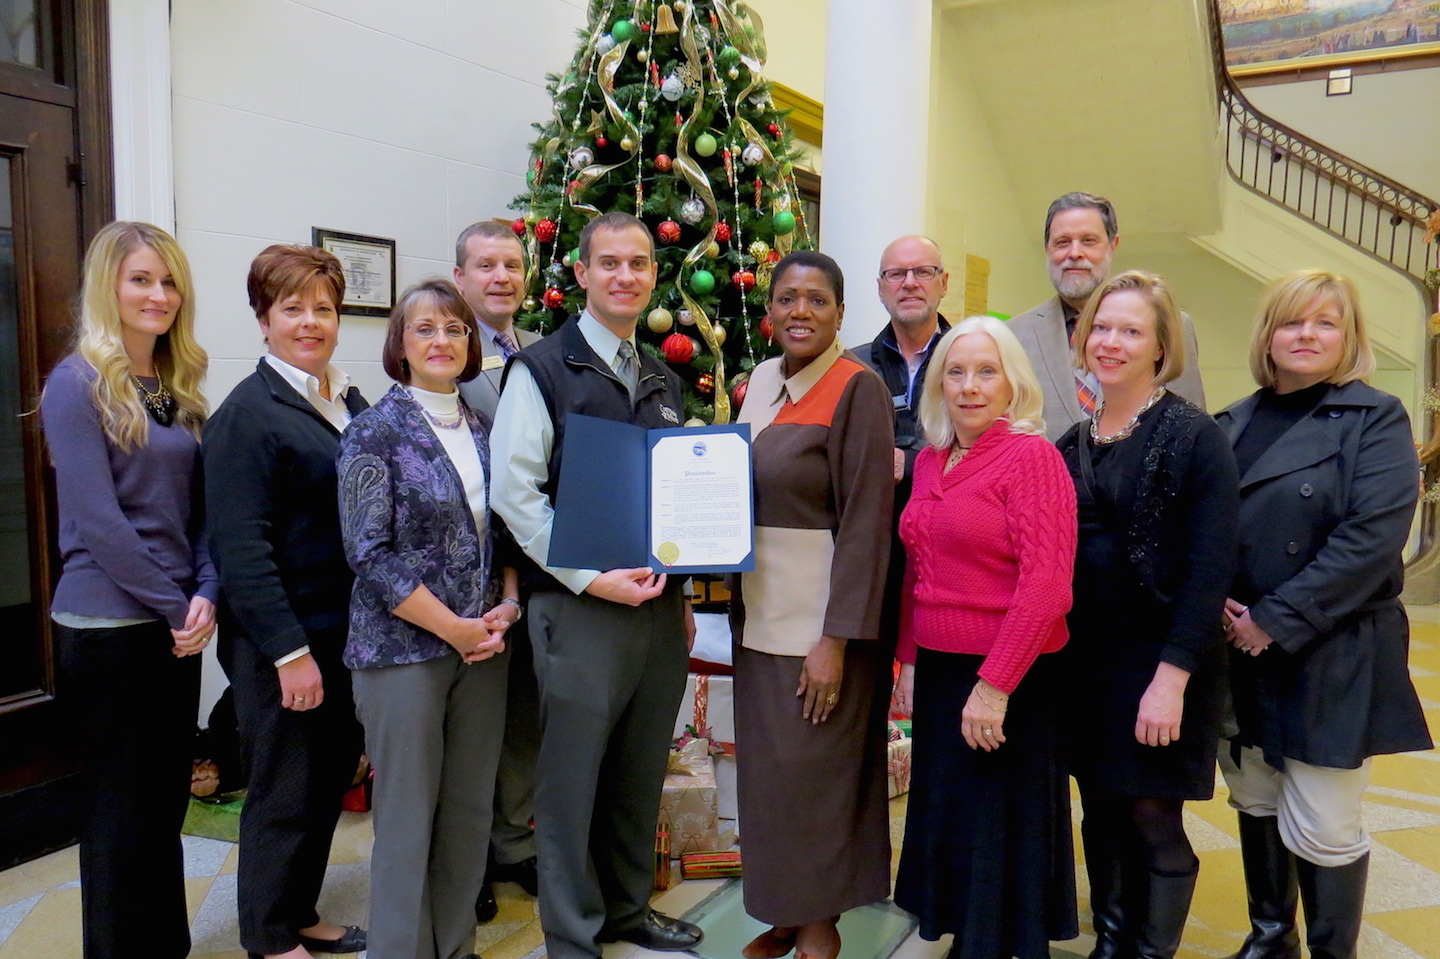 City of Niagara Falls Administrator Donna Owens, and Community Missions of Niagara Frontier Communications and Development Manager Christian Hoffman, both center, hold a proclamation wherein Dec. 1, 2015, was named #GivingTuesday in Niagara Falls. They are joined by representatives of Niagara University, the Isaiah 61 Project, Family & Children's Service of Niagara, the Niagara Falls Public Library and Opportunities Unlimited of Niagara.